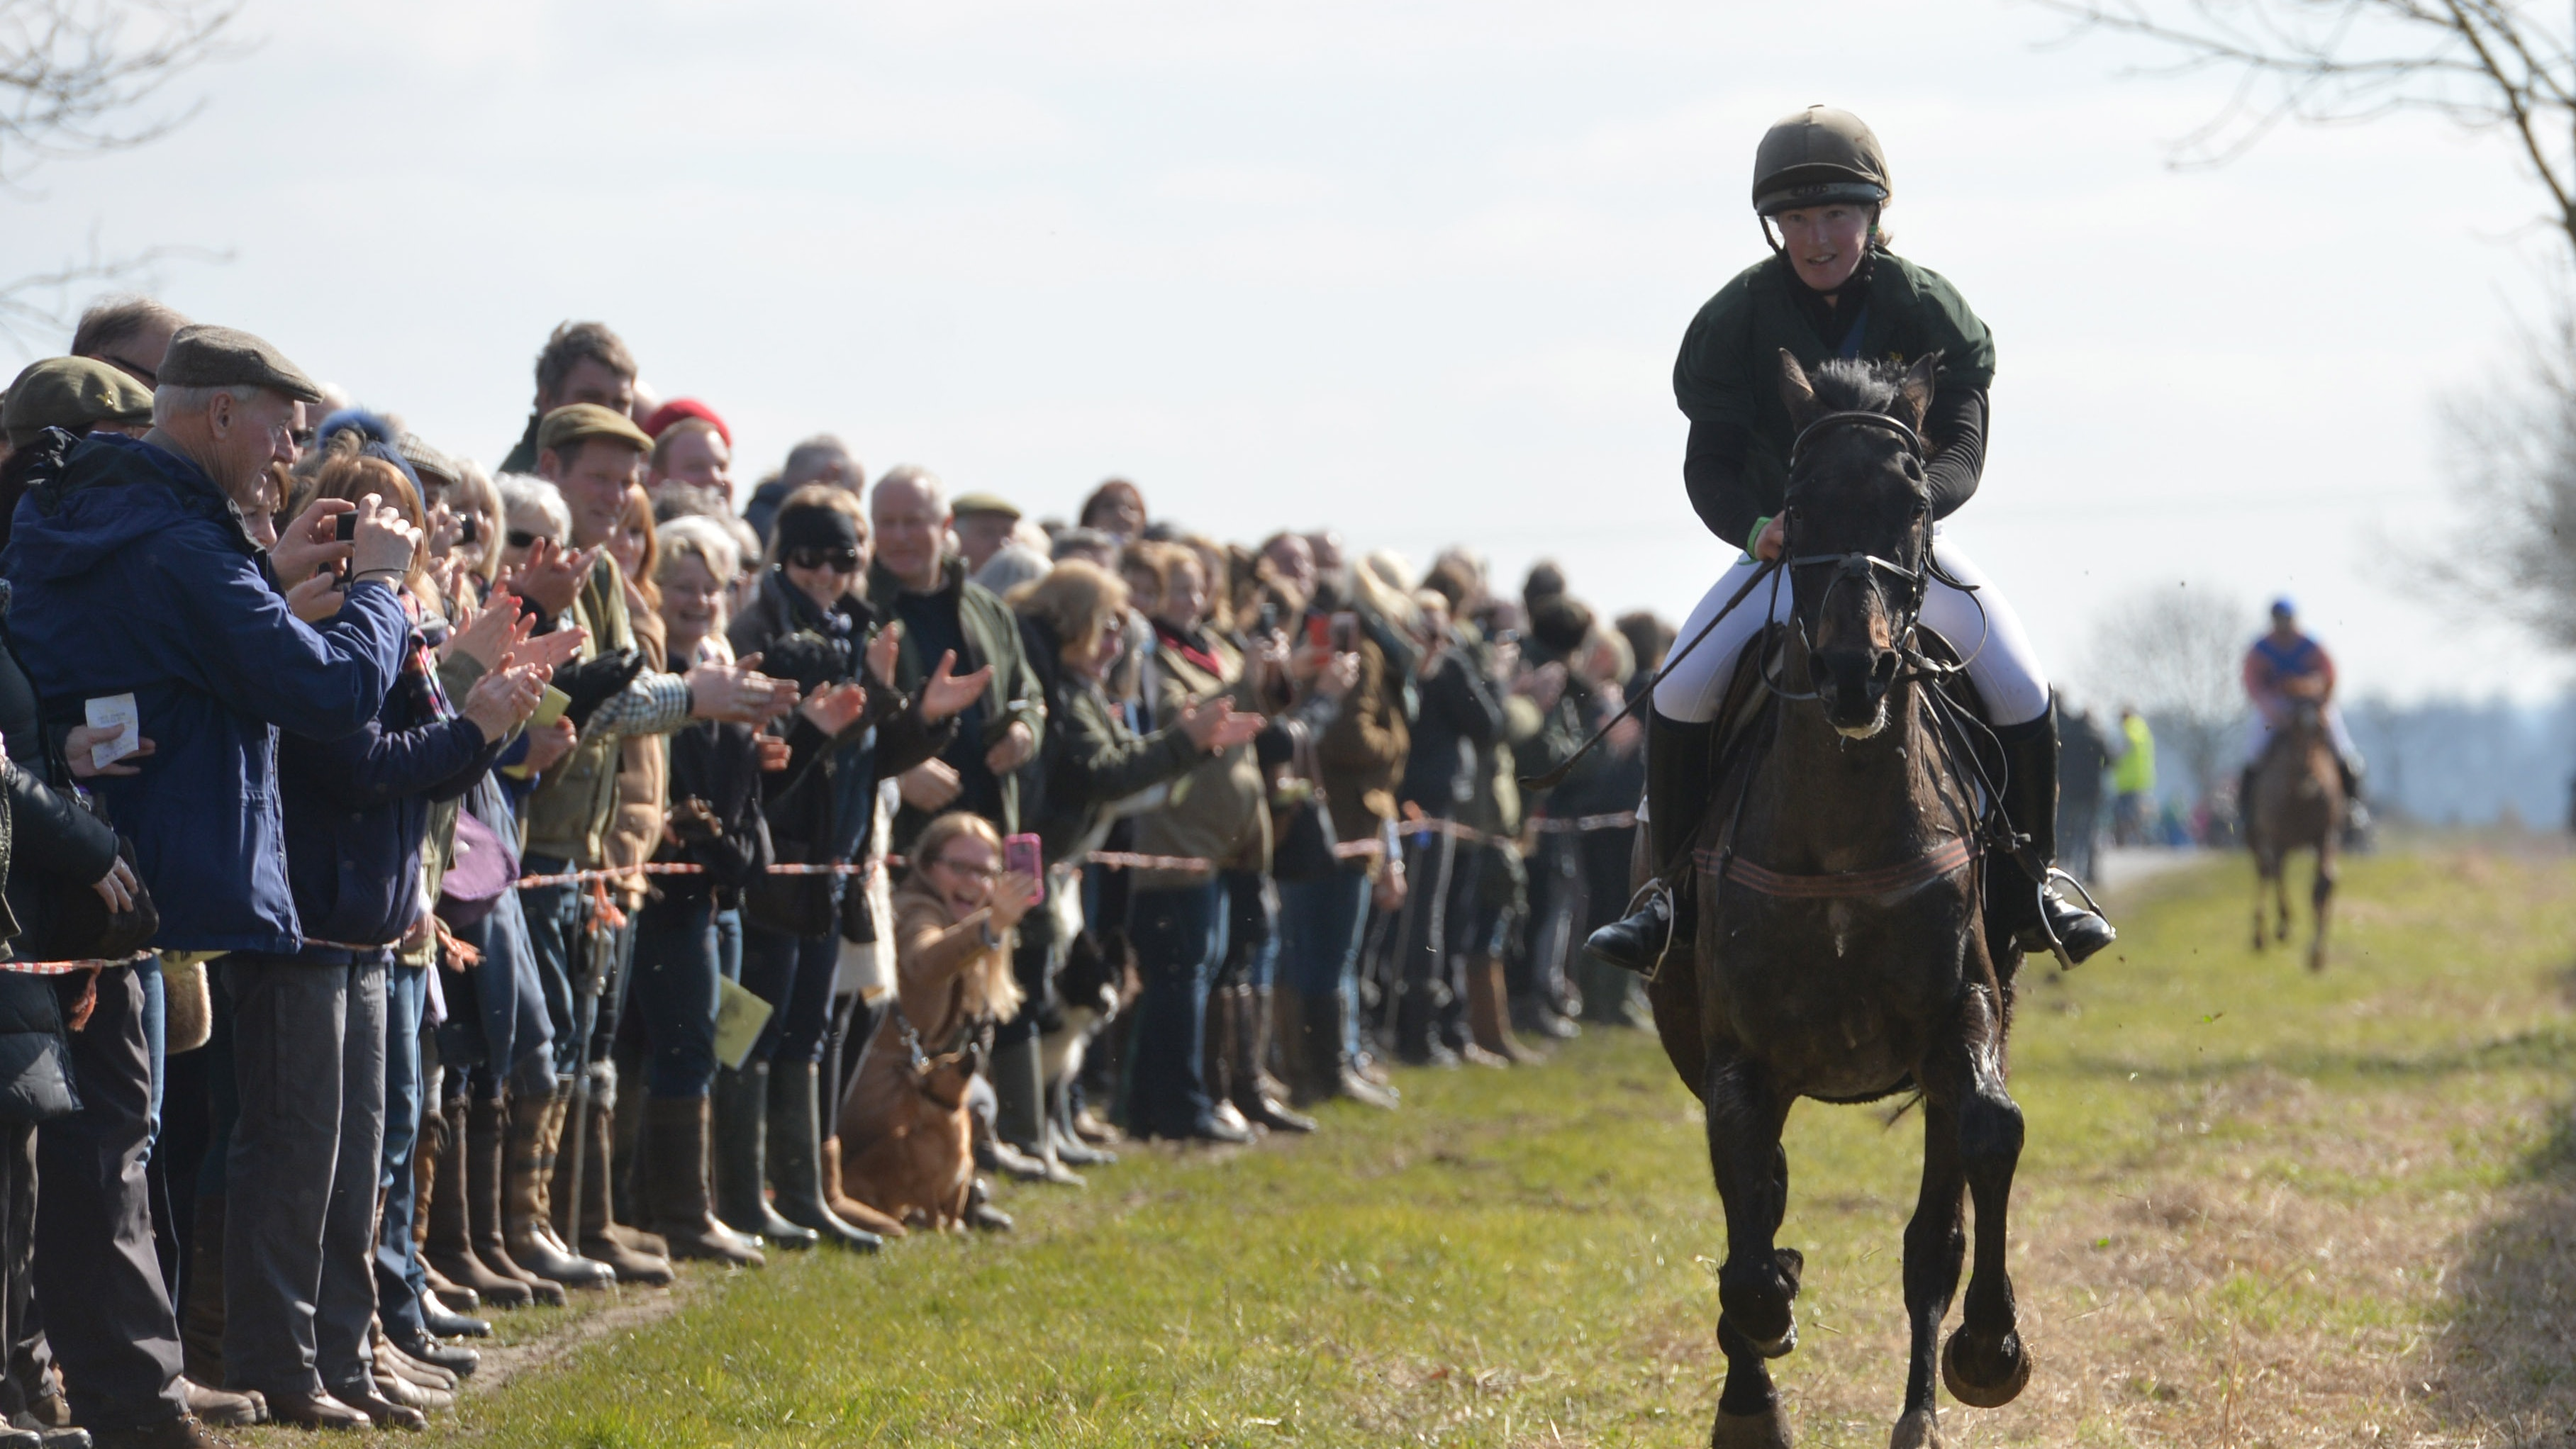 England S Oldest Horse Race Under Starter S Orders To Mark 500th